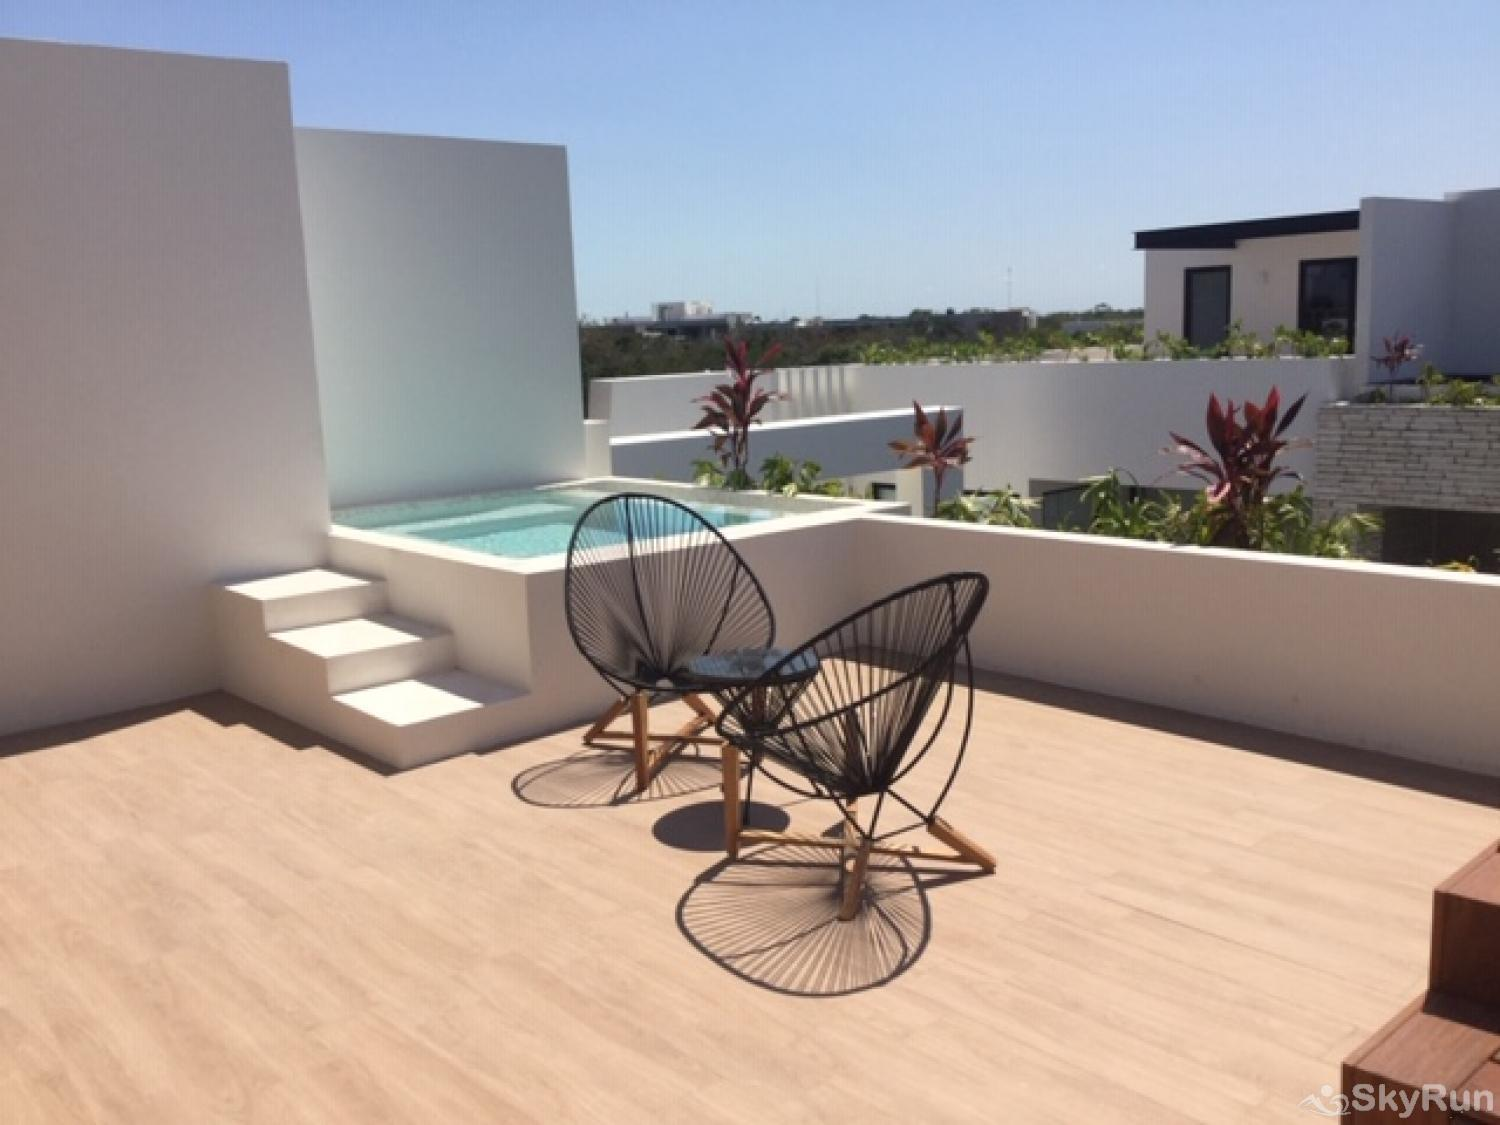 Sanctuary Tulum 2BR Condo Paradise Outdoor Pool 2bd condo with outdoor pool